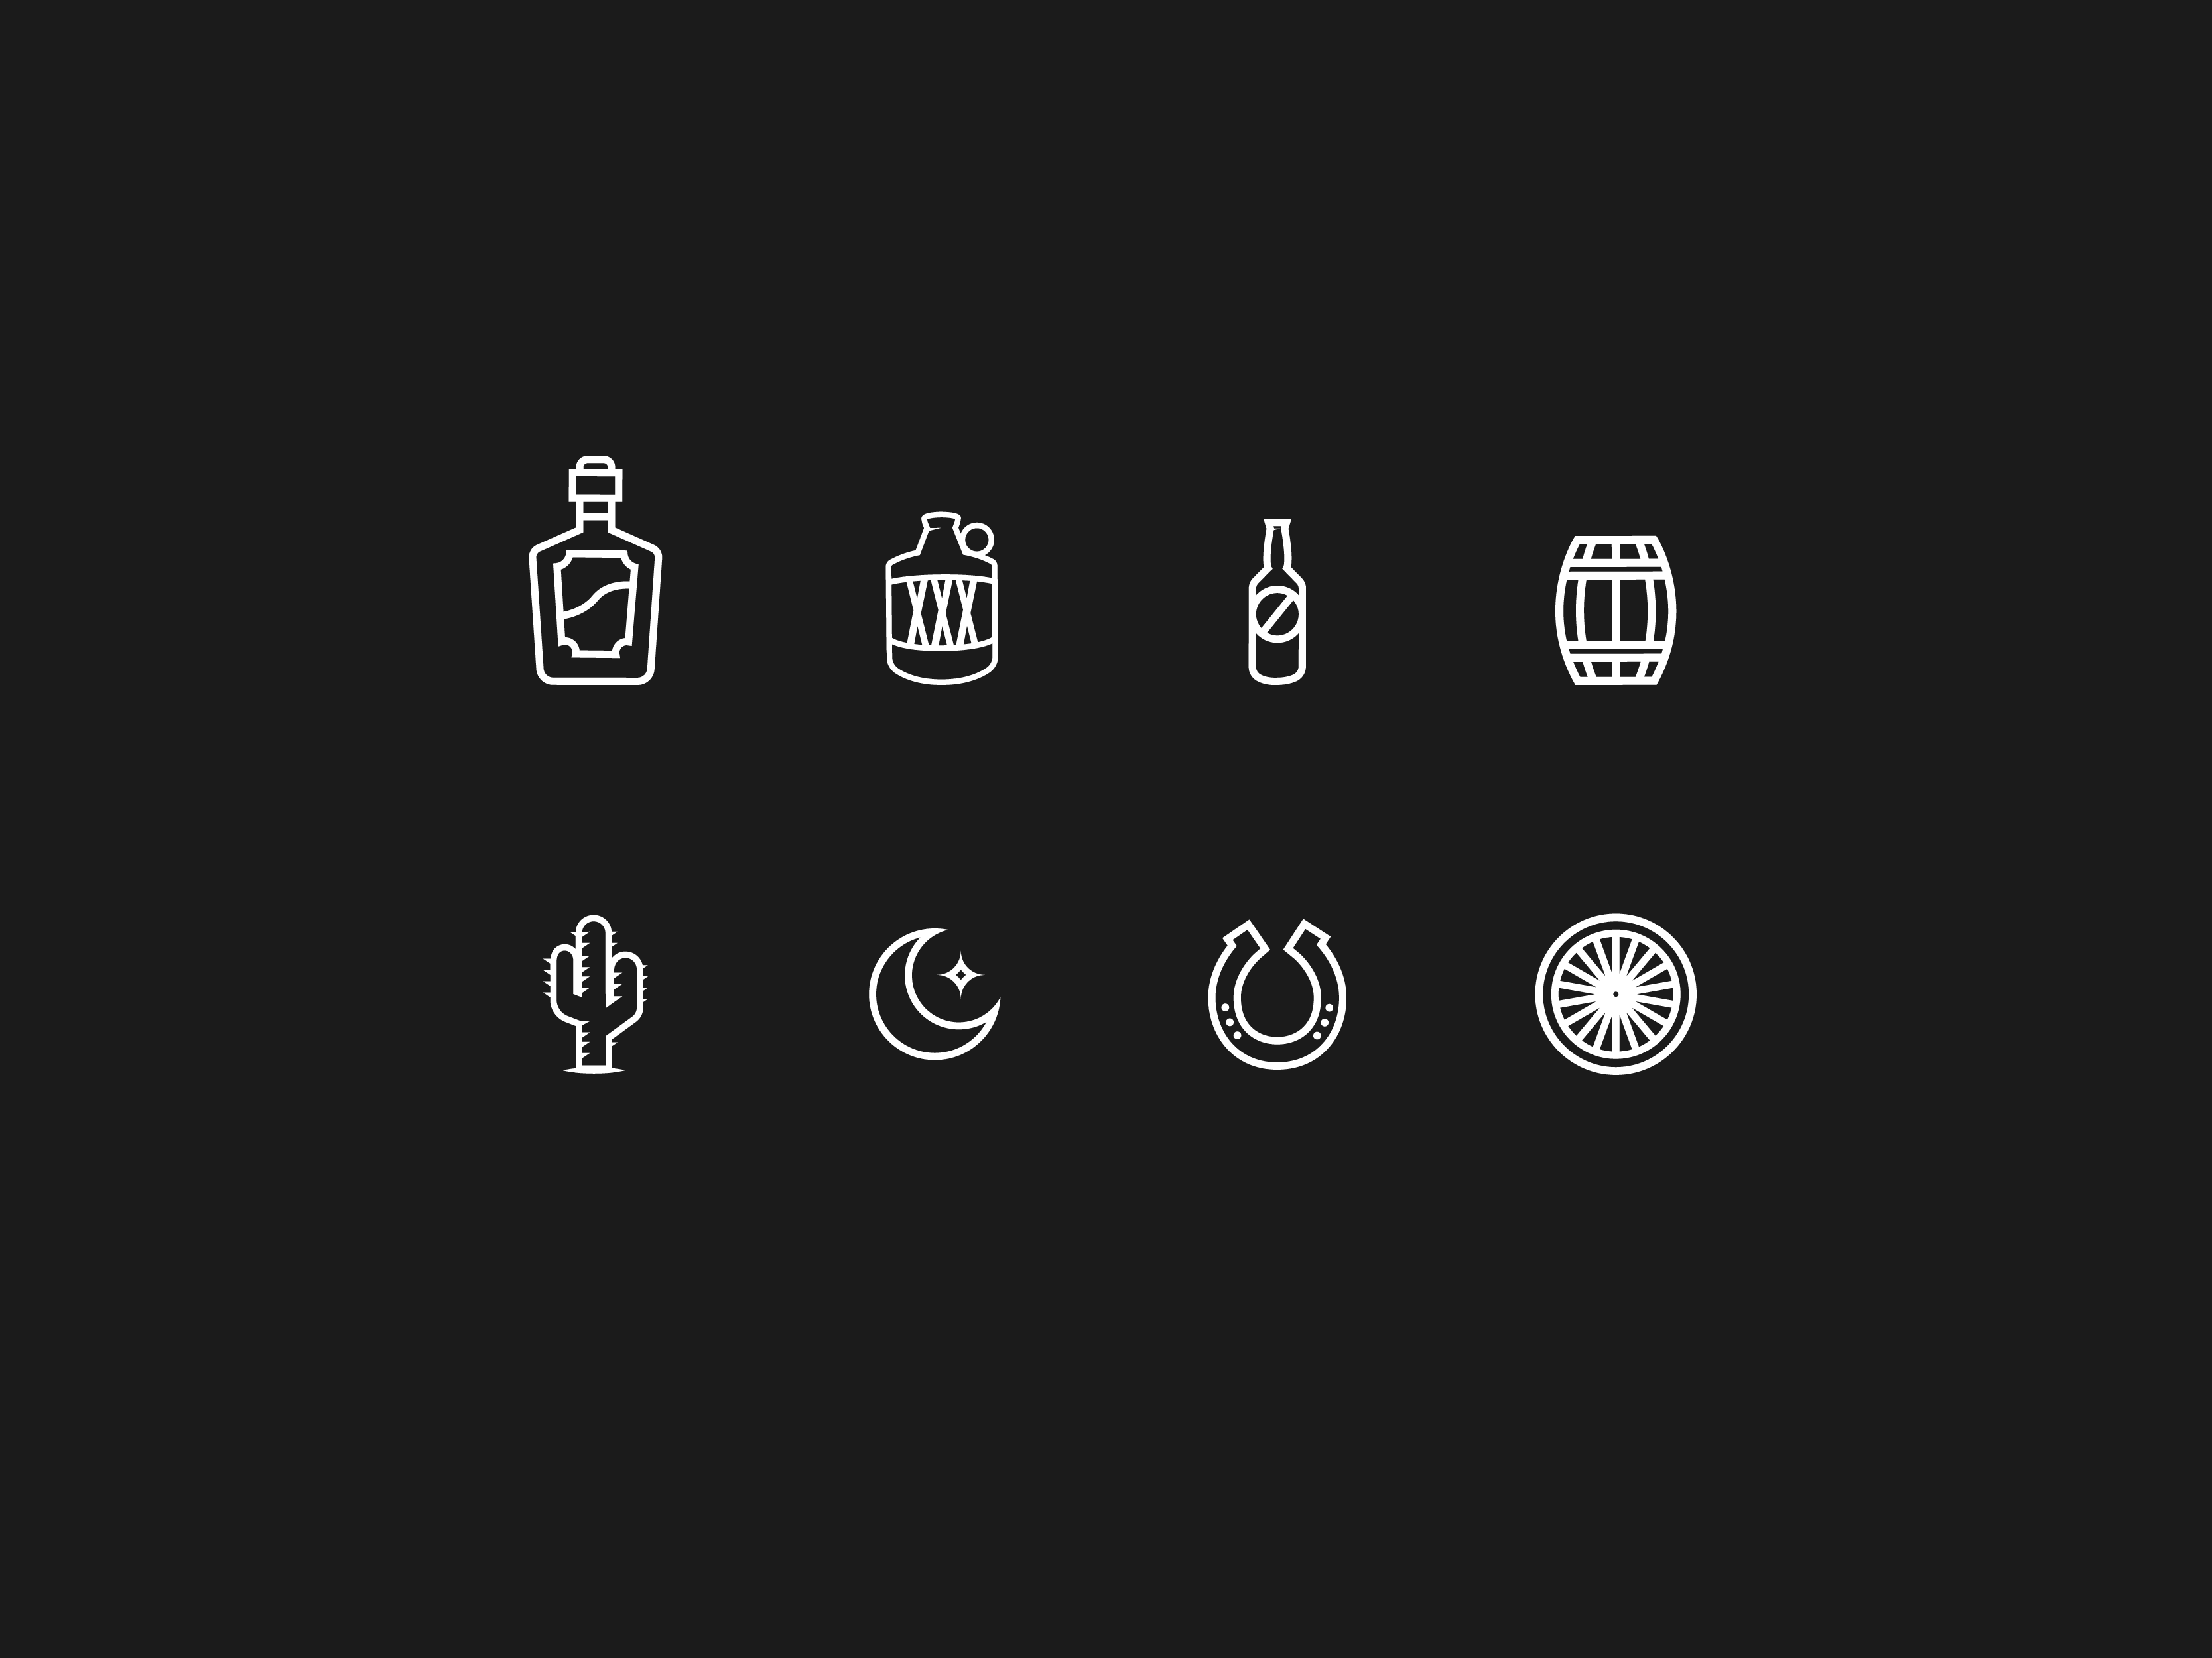 icon designs for outlaw brewing